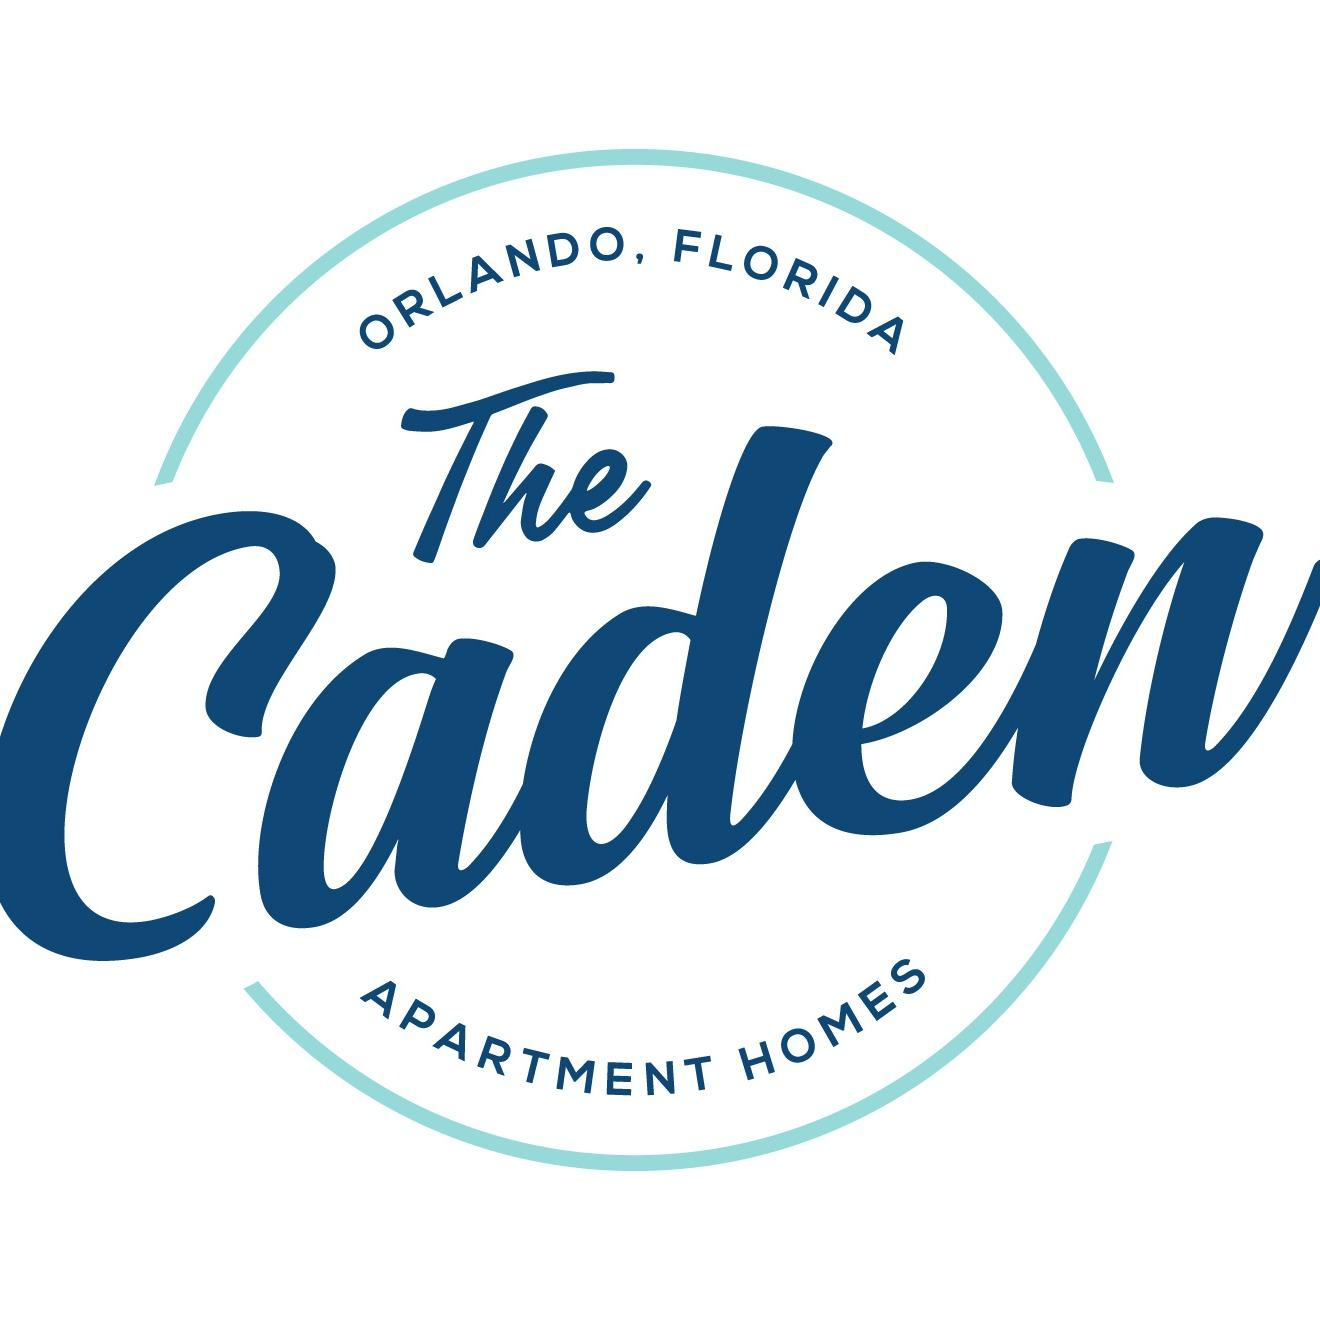 The Caden at East Mil Orlando Apartments